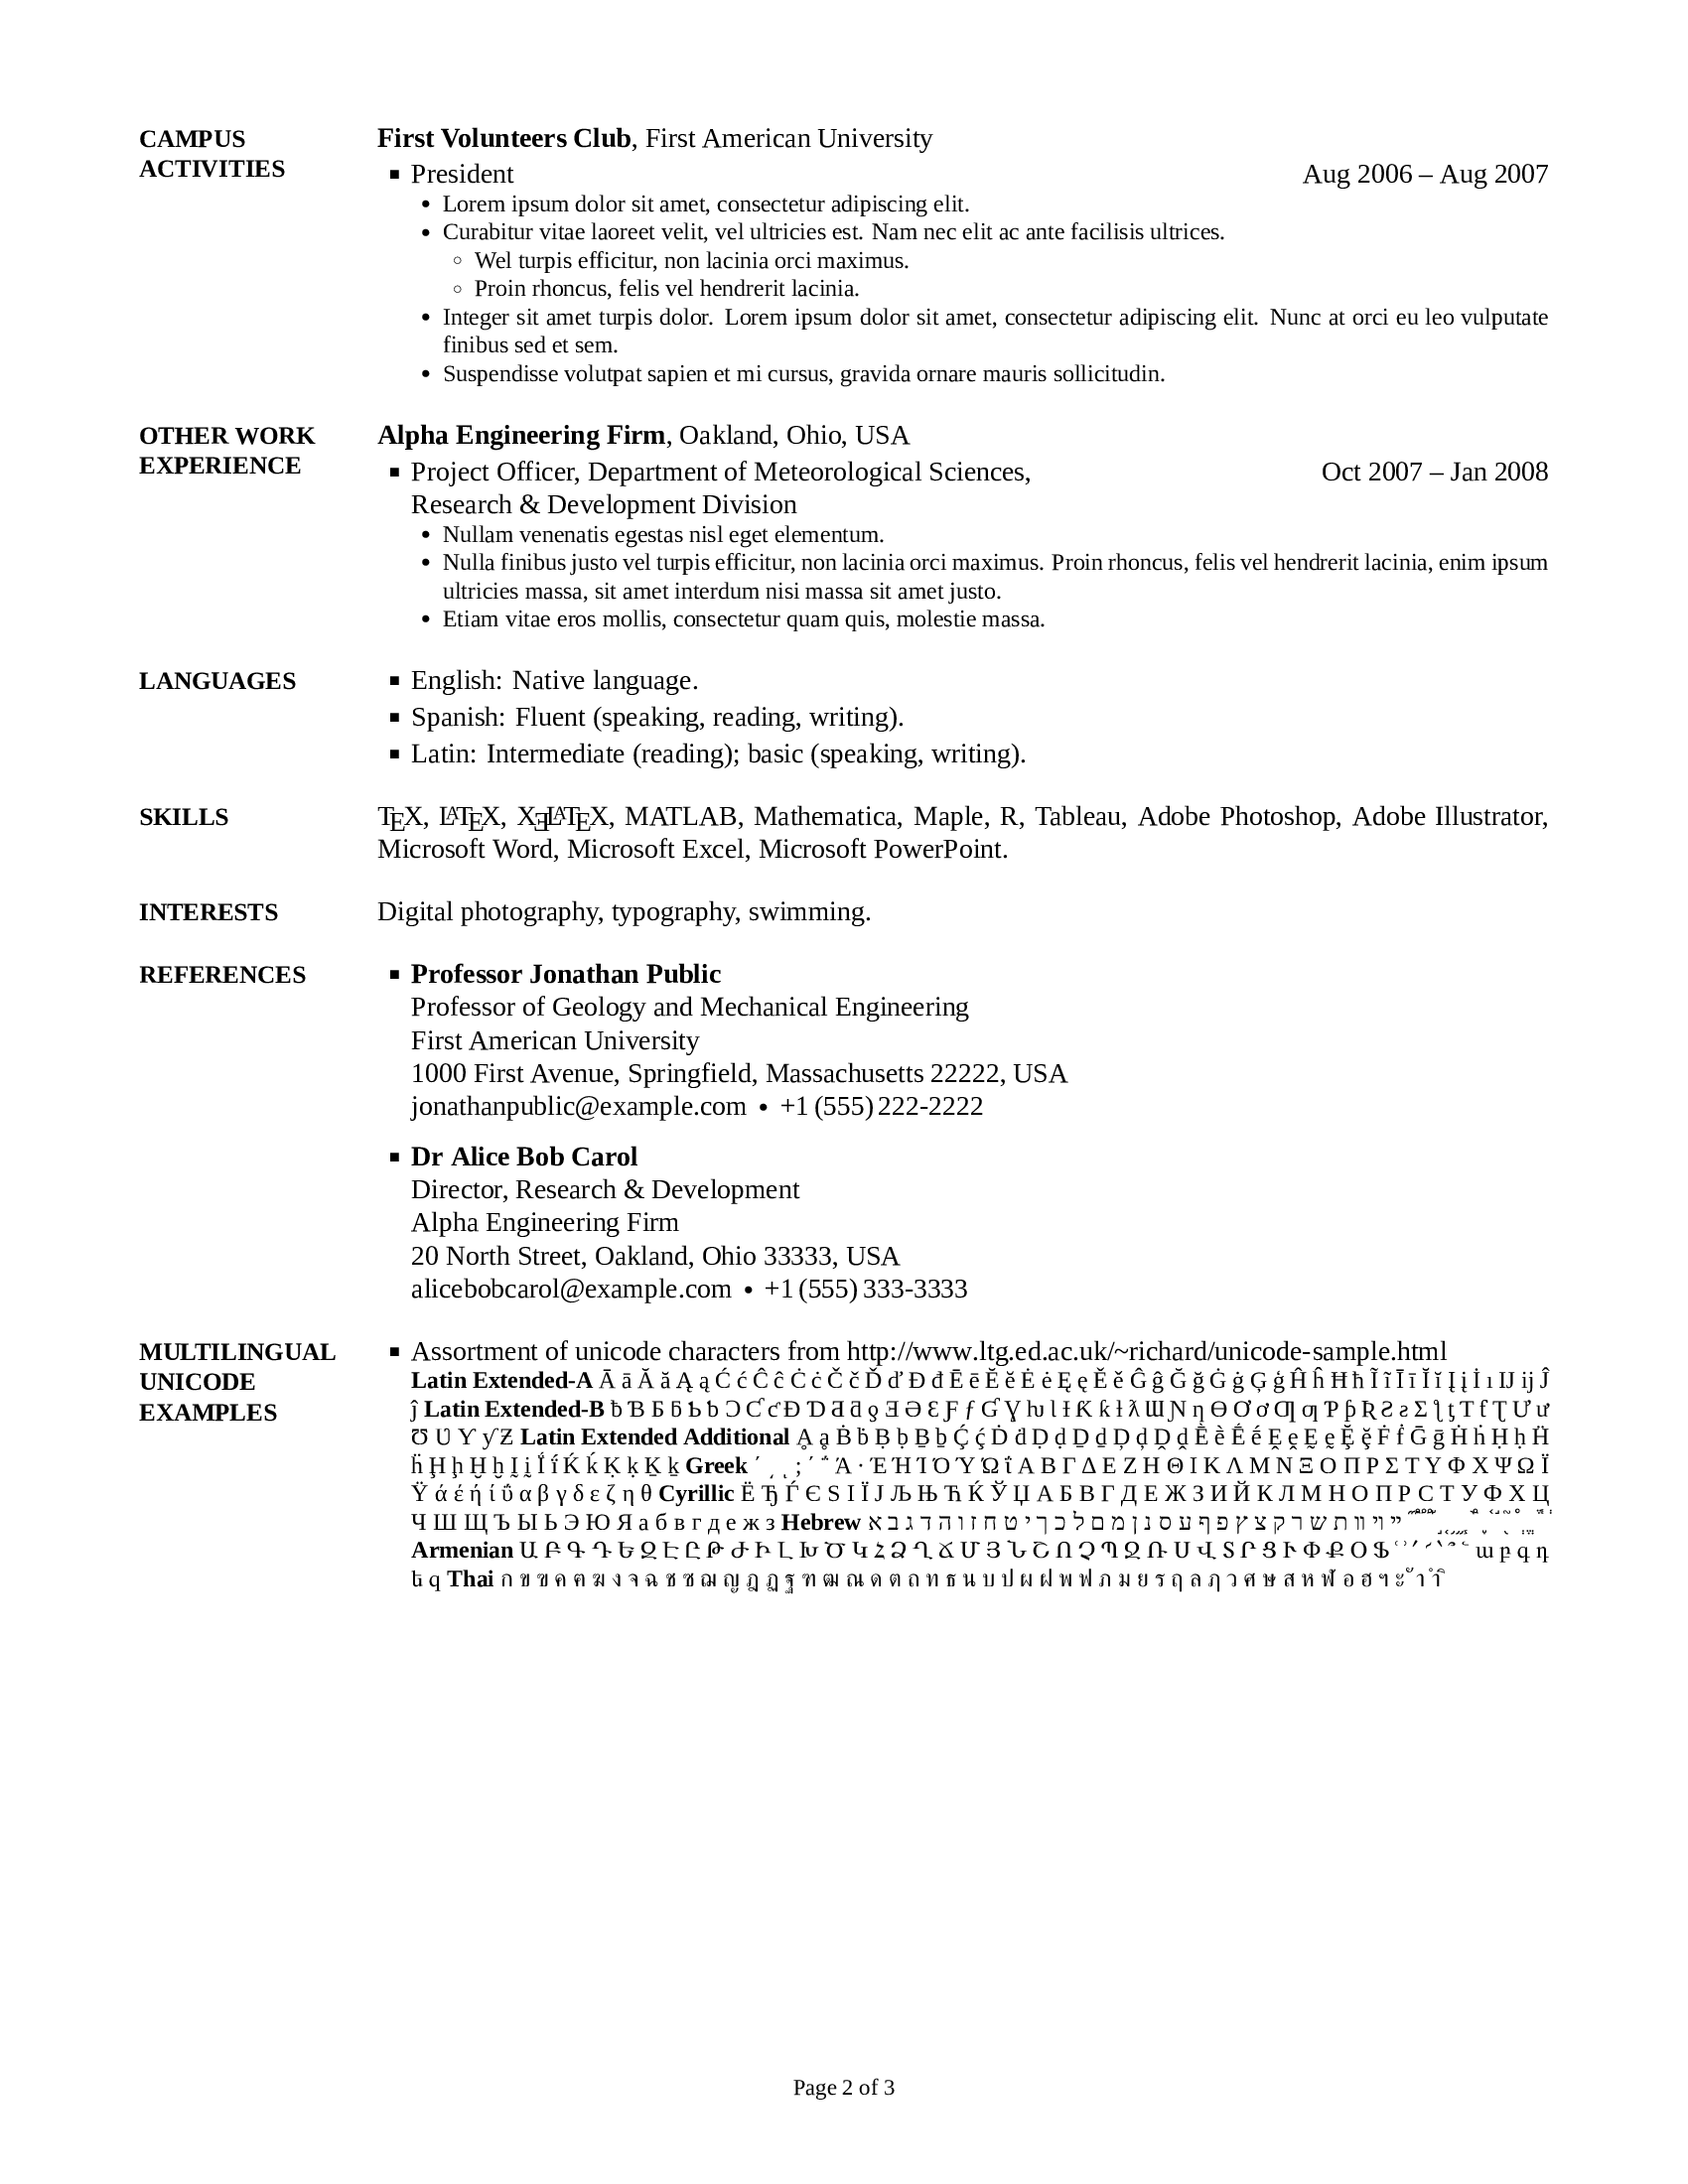 Resume Template Github Github Zachscrivena Simple Resume Cv Template For A